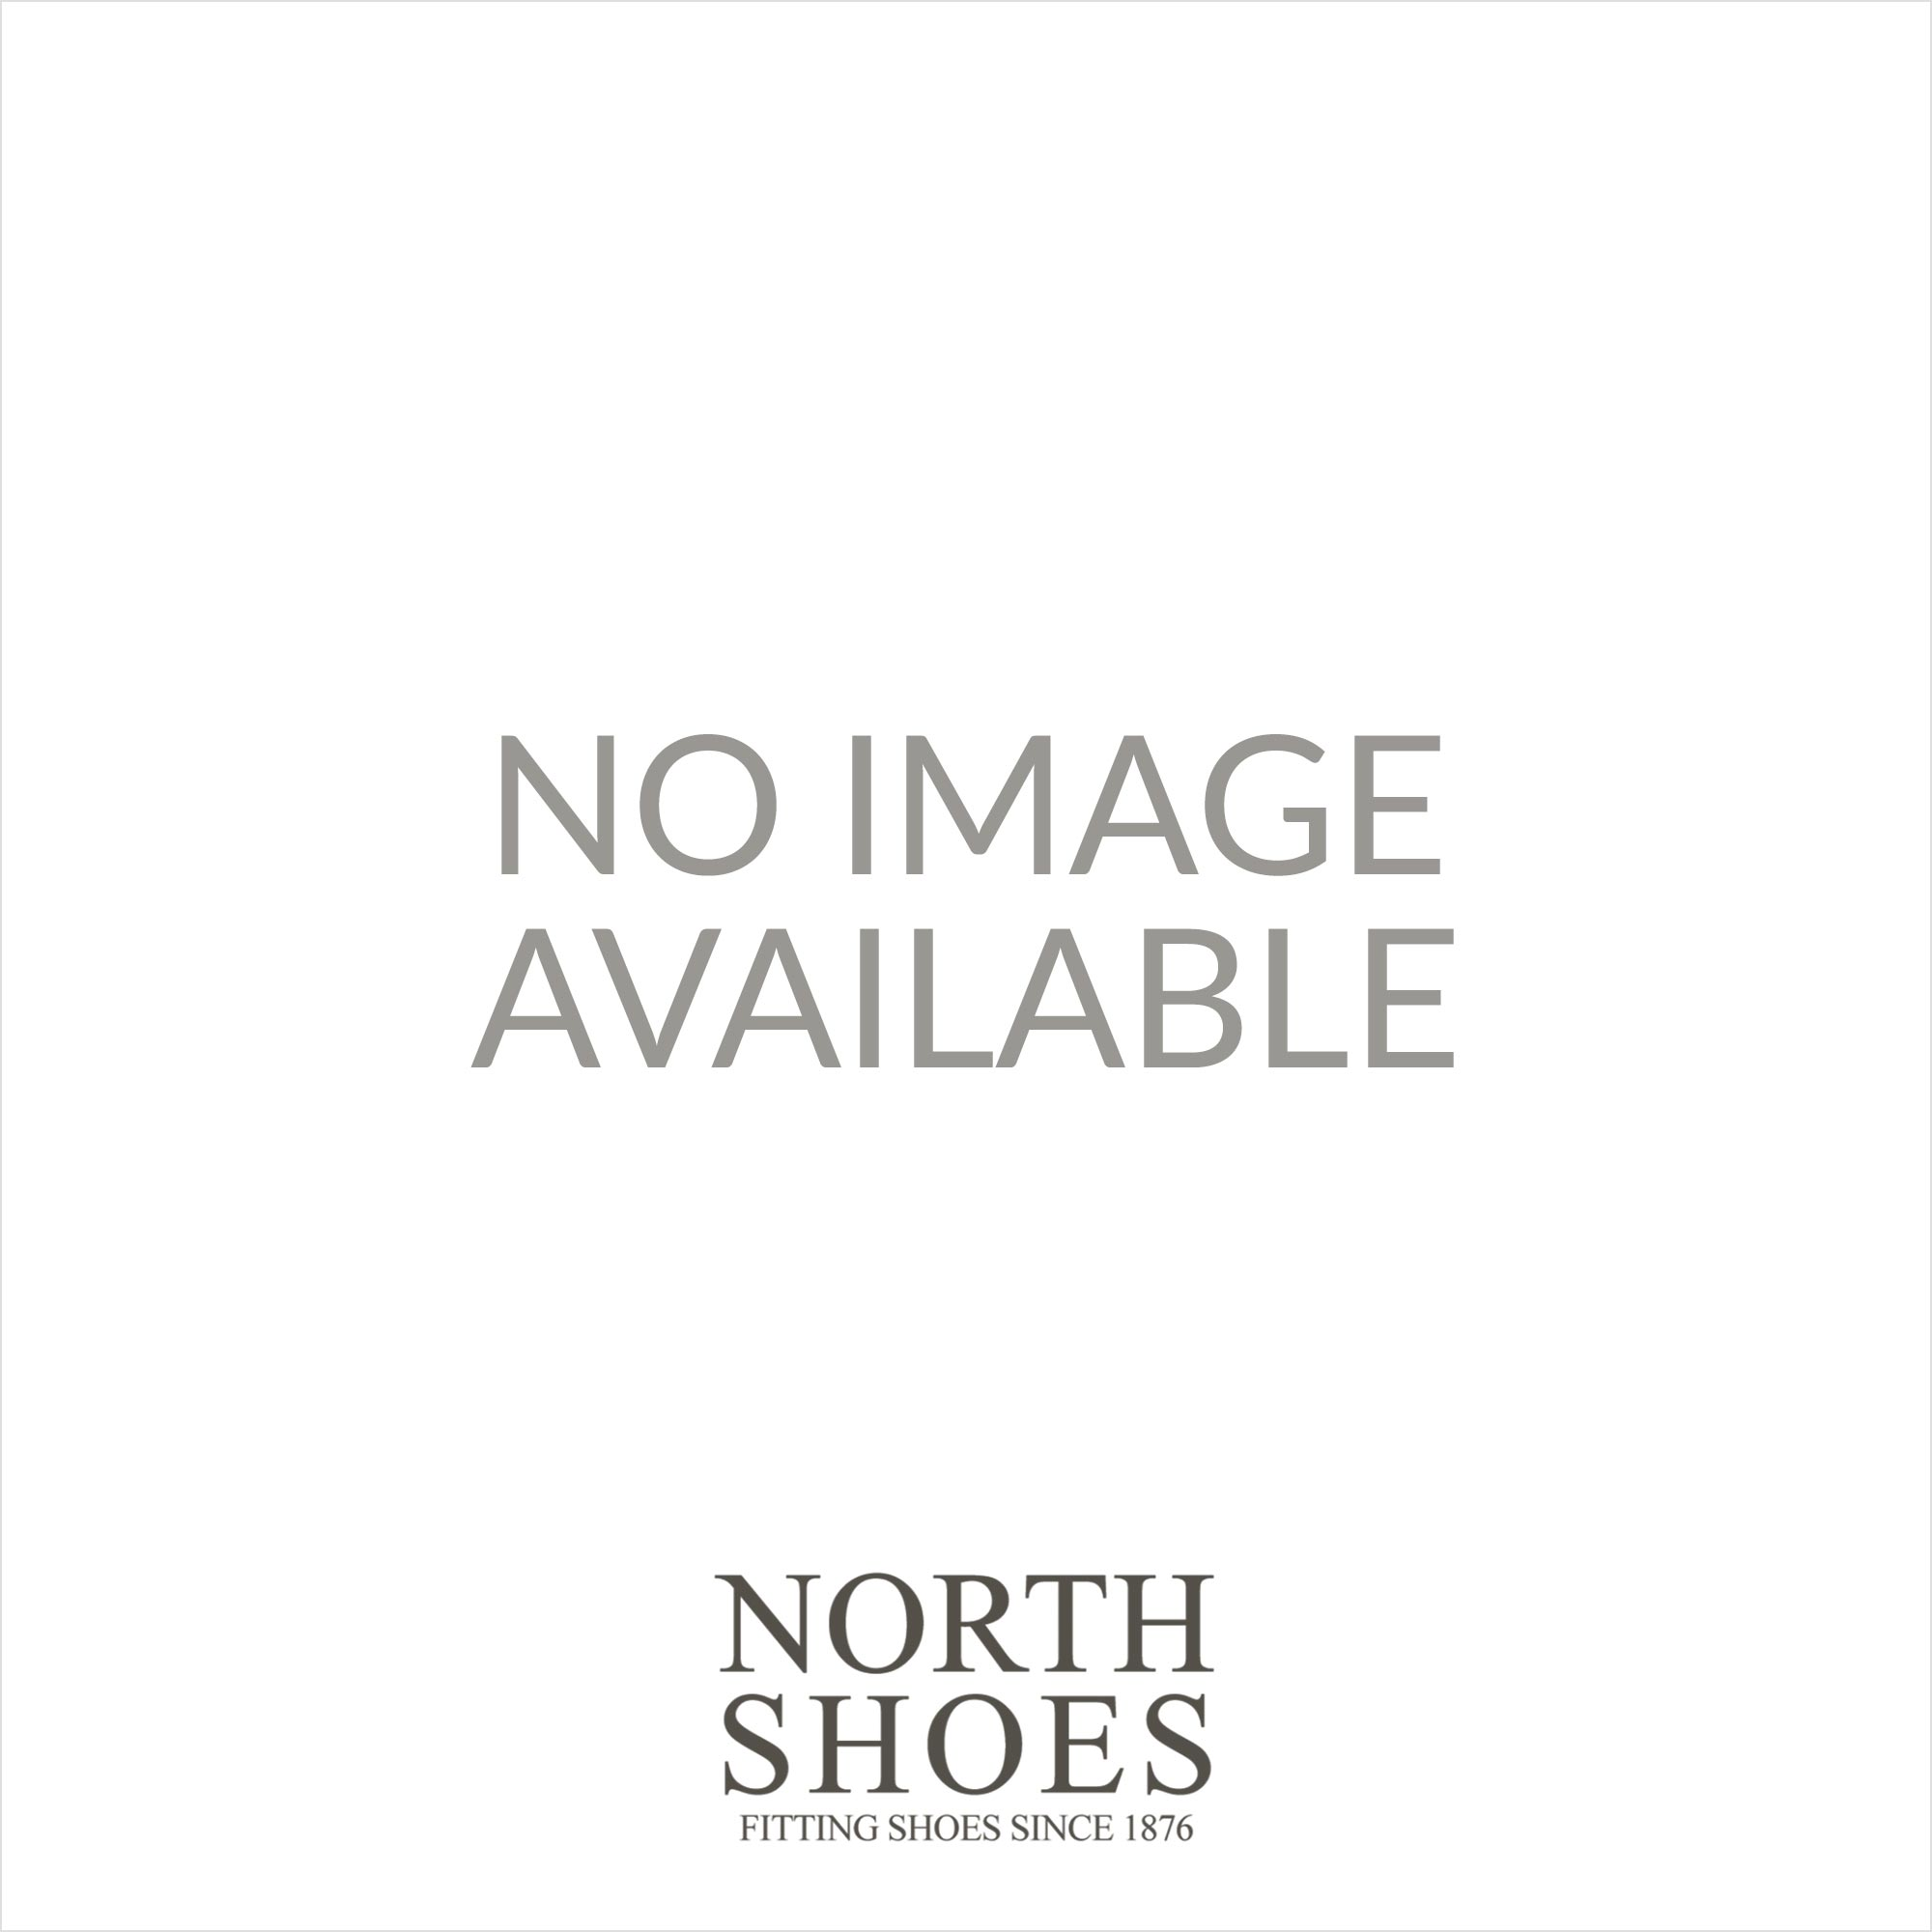 Low price shoes for Women, Men and Kids, including, boots, sandals, dress and athletic shoes. Free Shipping +$25, Free Returns at any Payless Store. Payless ShoeSource.